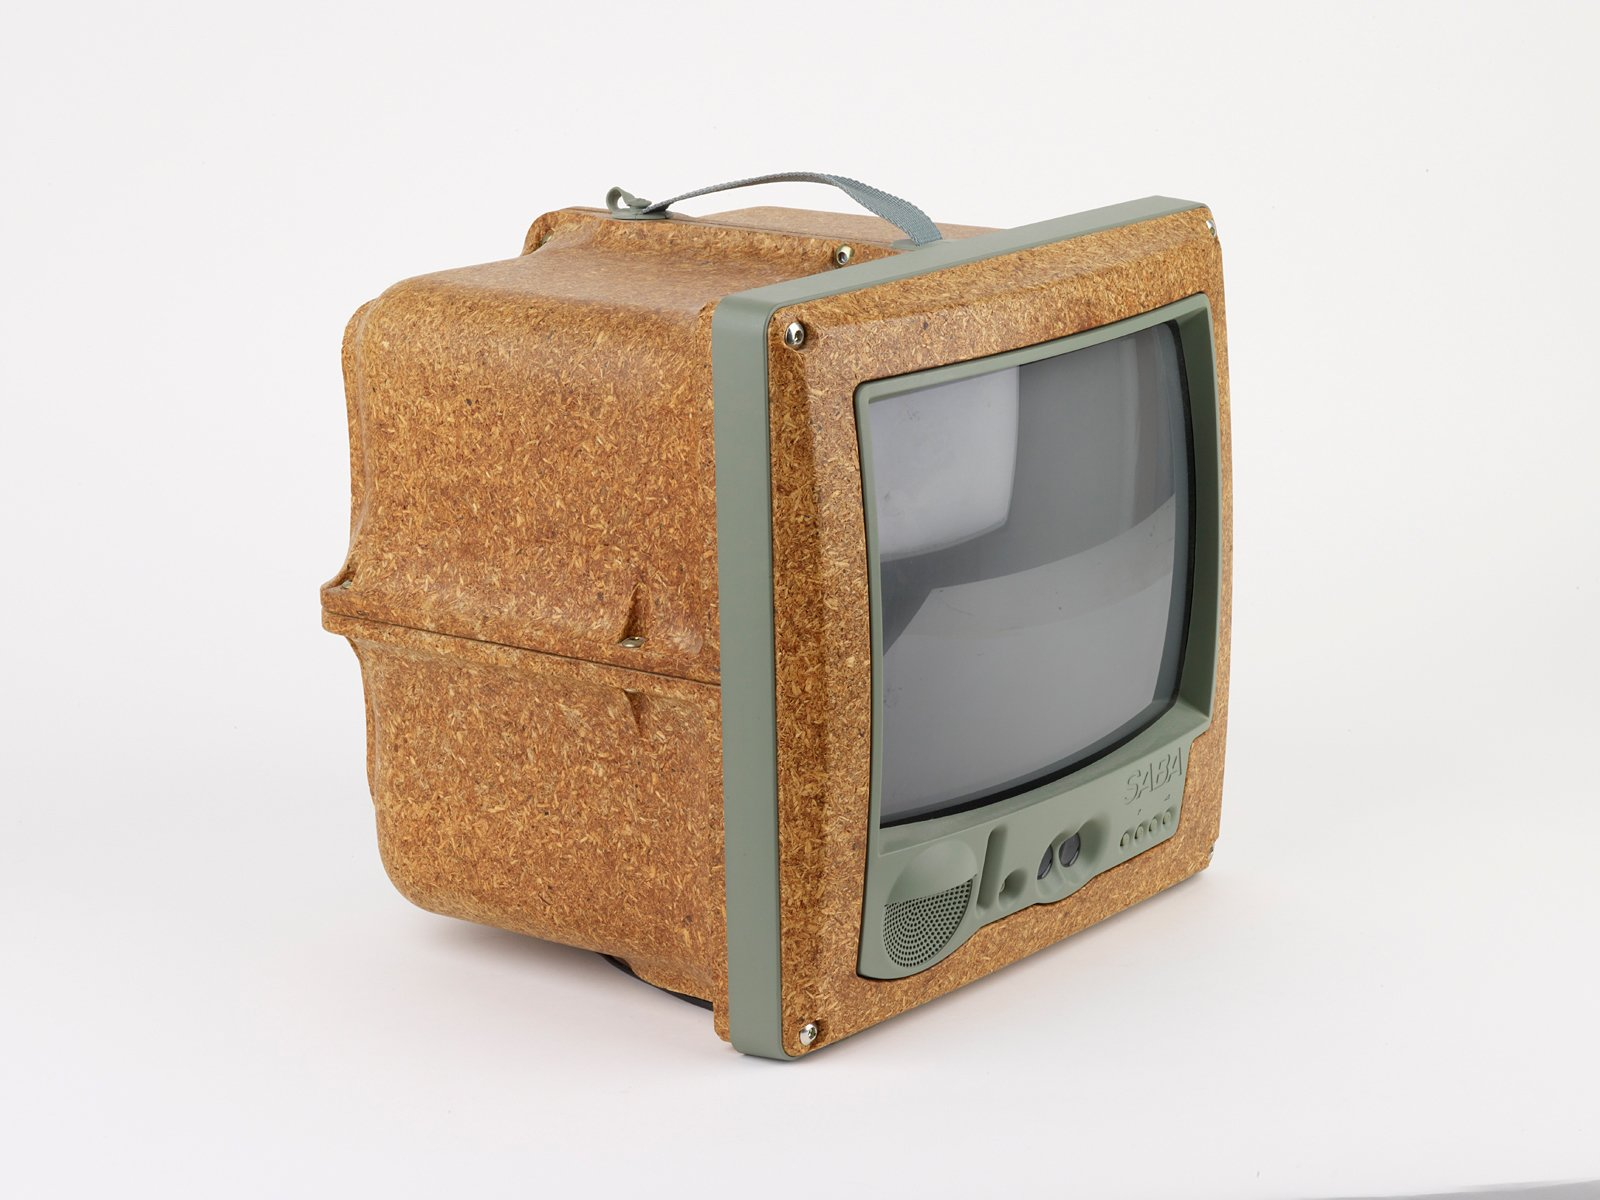 By selecting high-density chipboard casing instead of then-ubiquitous black plastic in 1994, Phillippe Starck's Jim Nature Portable Television was at the forefront of questioning the unabated use of plastics.  Design Museum London's Extraordinary Stories about Ordinary Things by Rebecca L. Weber